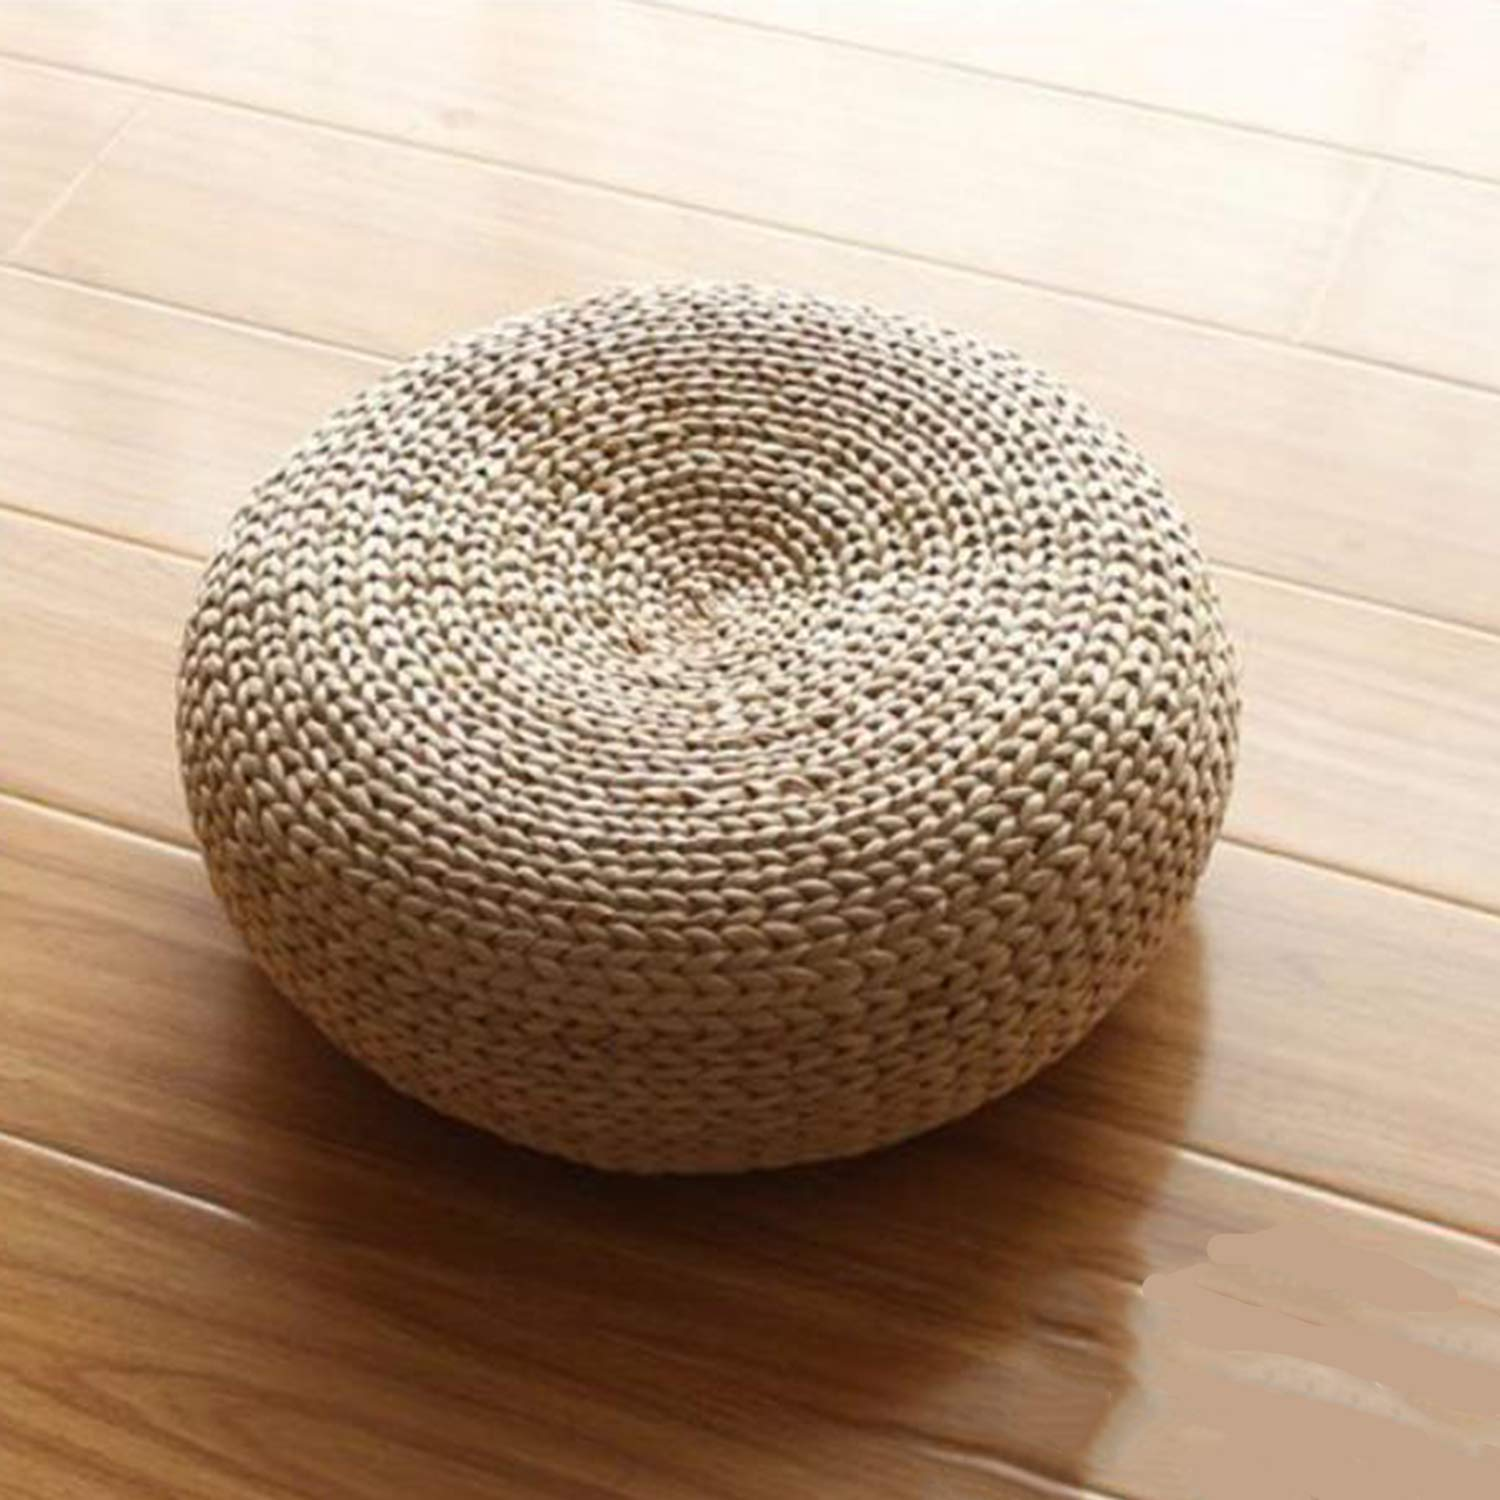 Grass Rattan Coffee Table, Low Table Tatami Coffee Table Simple Bay Window Small Table Cushion